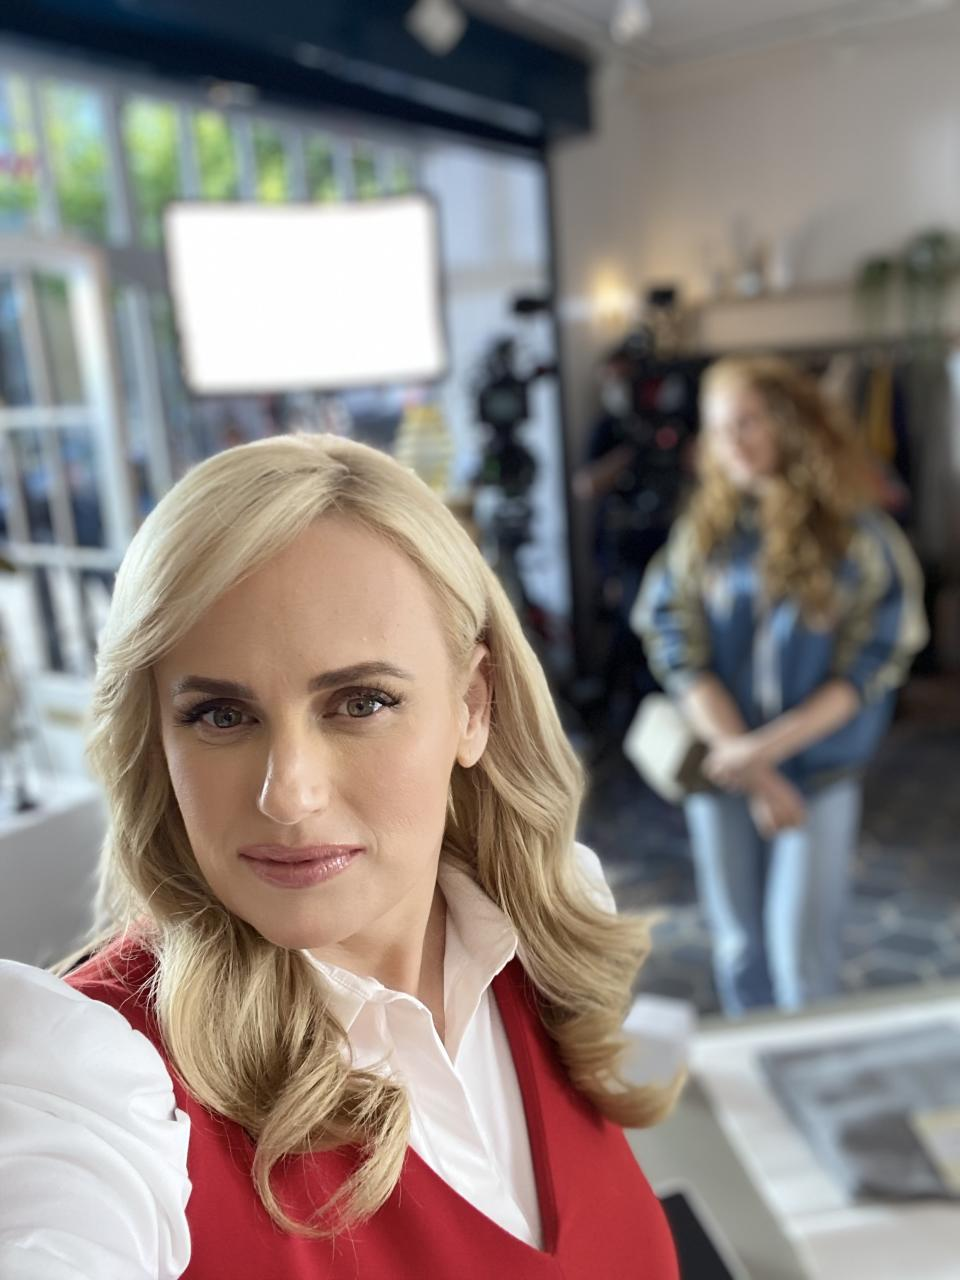 Rebel Wilson in a red and white outfit in Afterpay ad